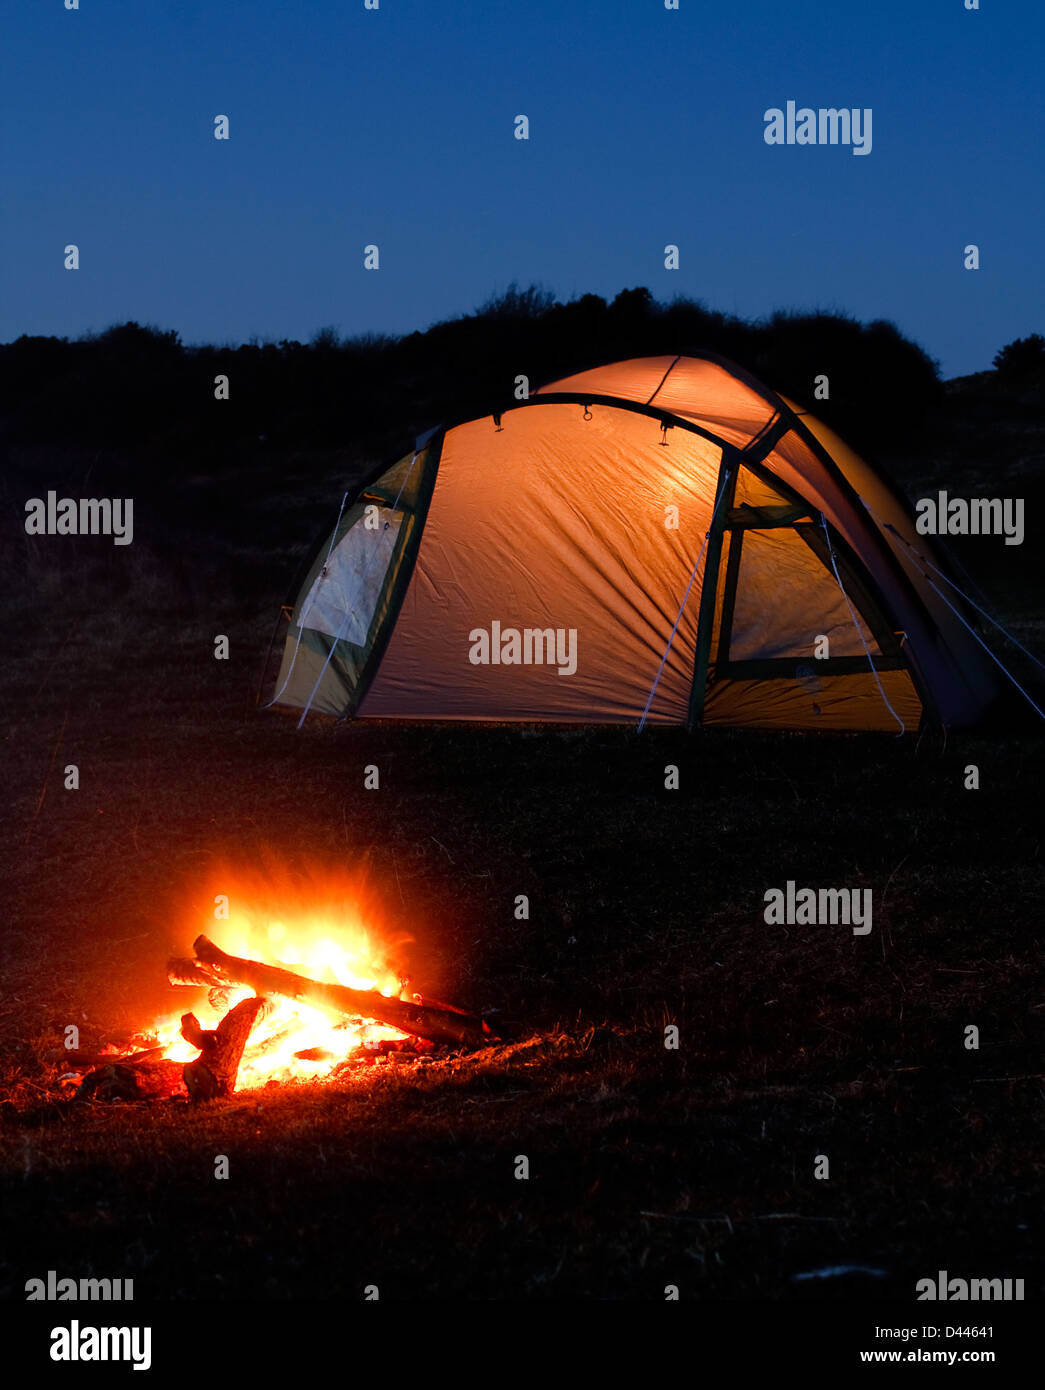 tent glows at night with campfire in front symbolizing camping holiday or vacation in the country - Stock Image